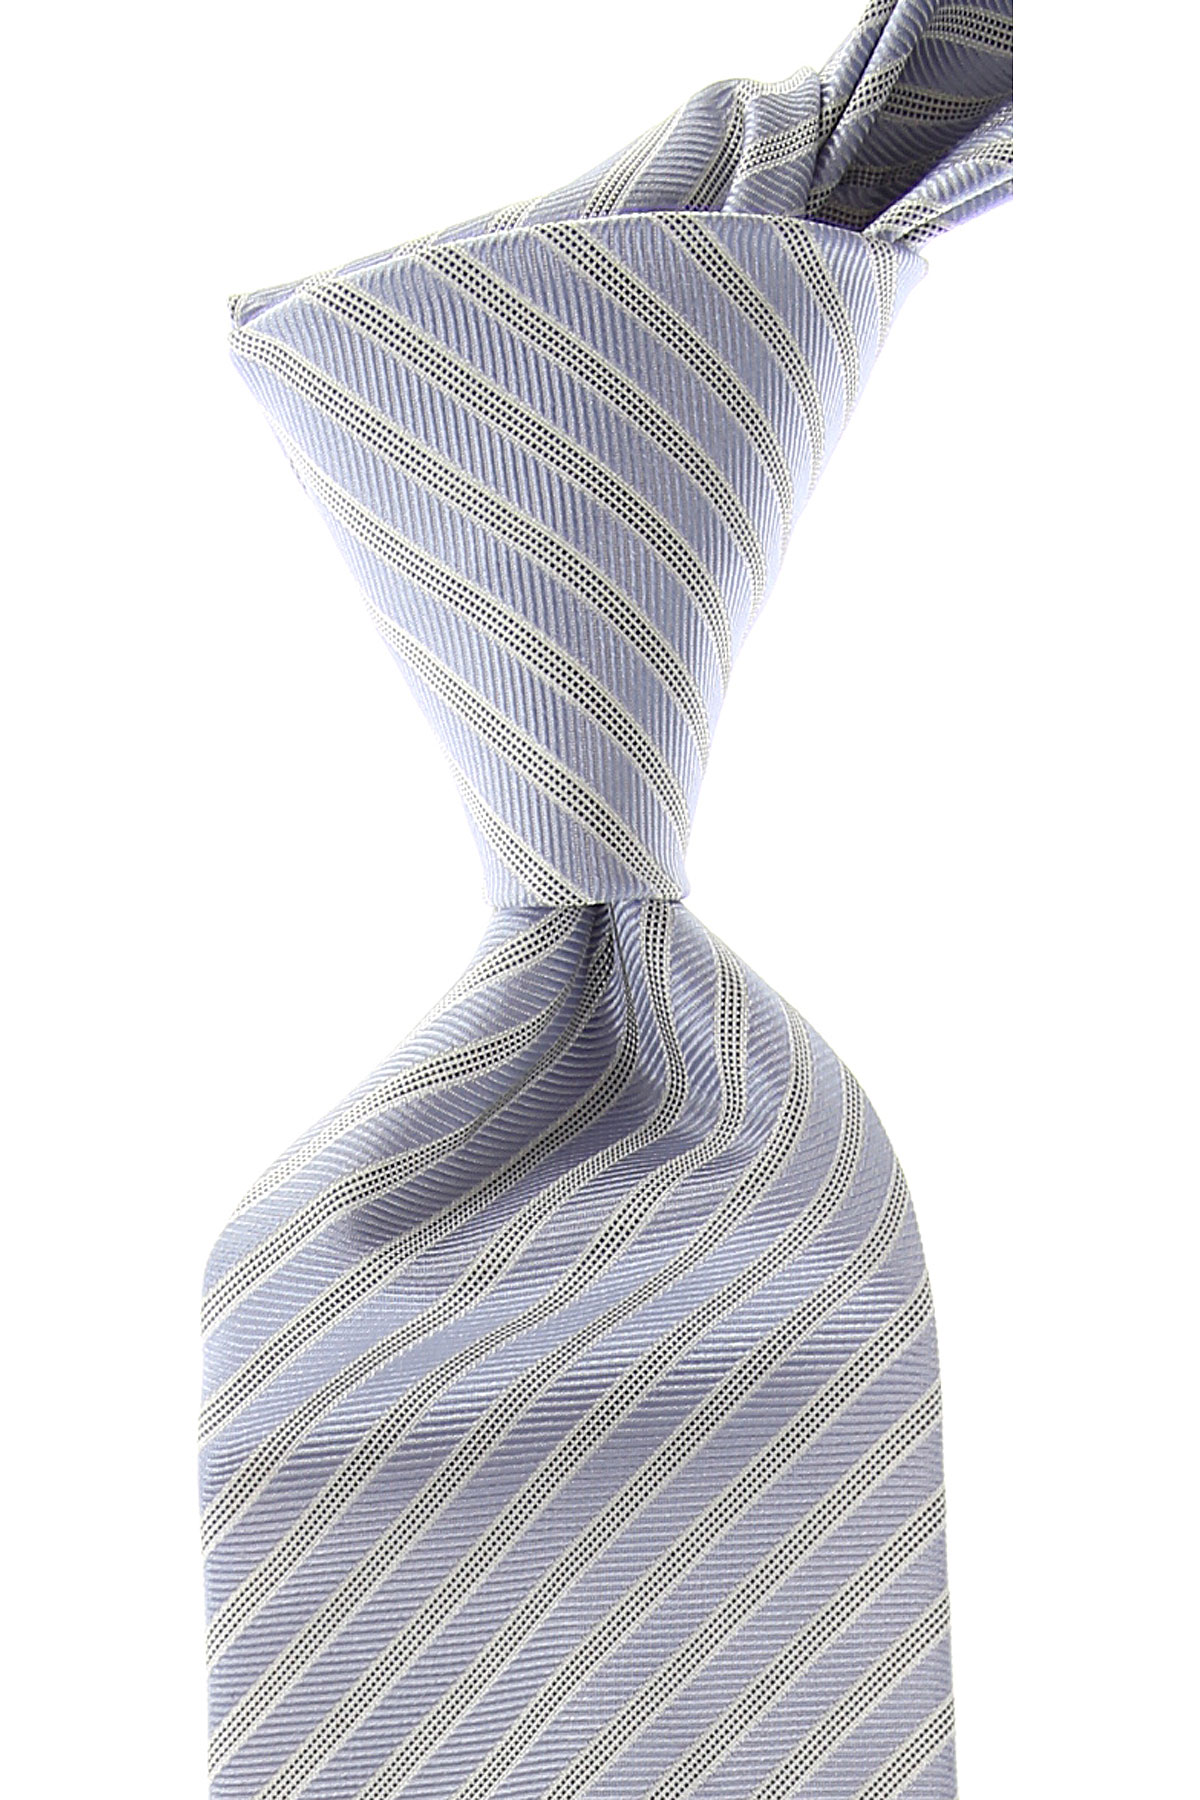 Giorgio_Armani_Ties_On_Sale_Blue_Sky_Silk_2019